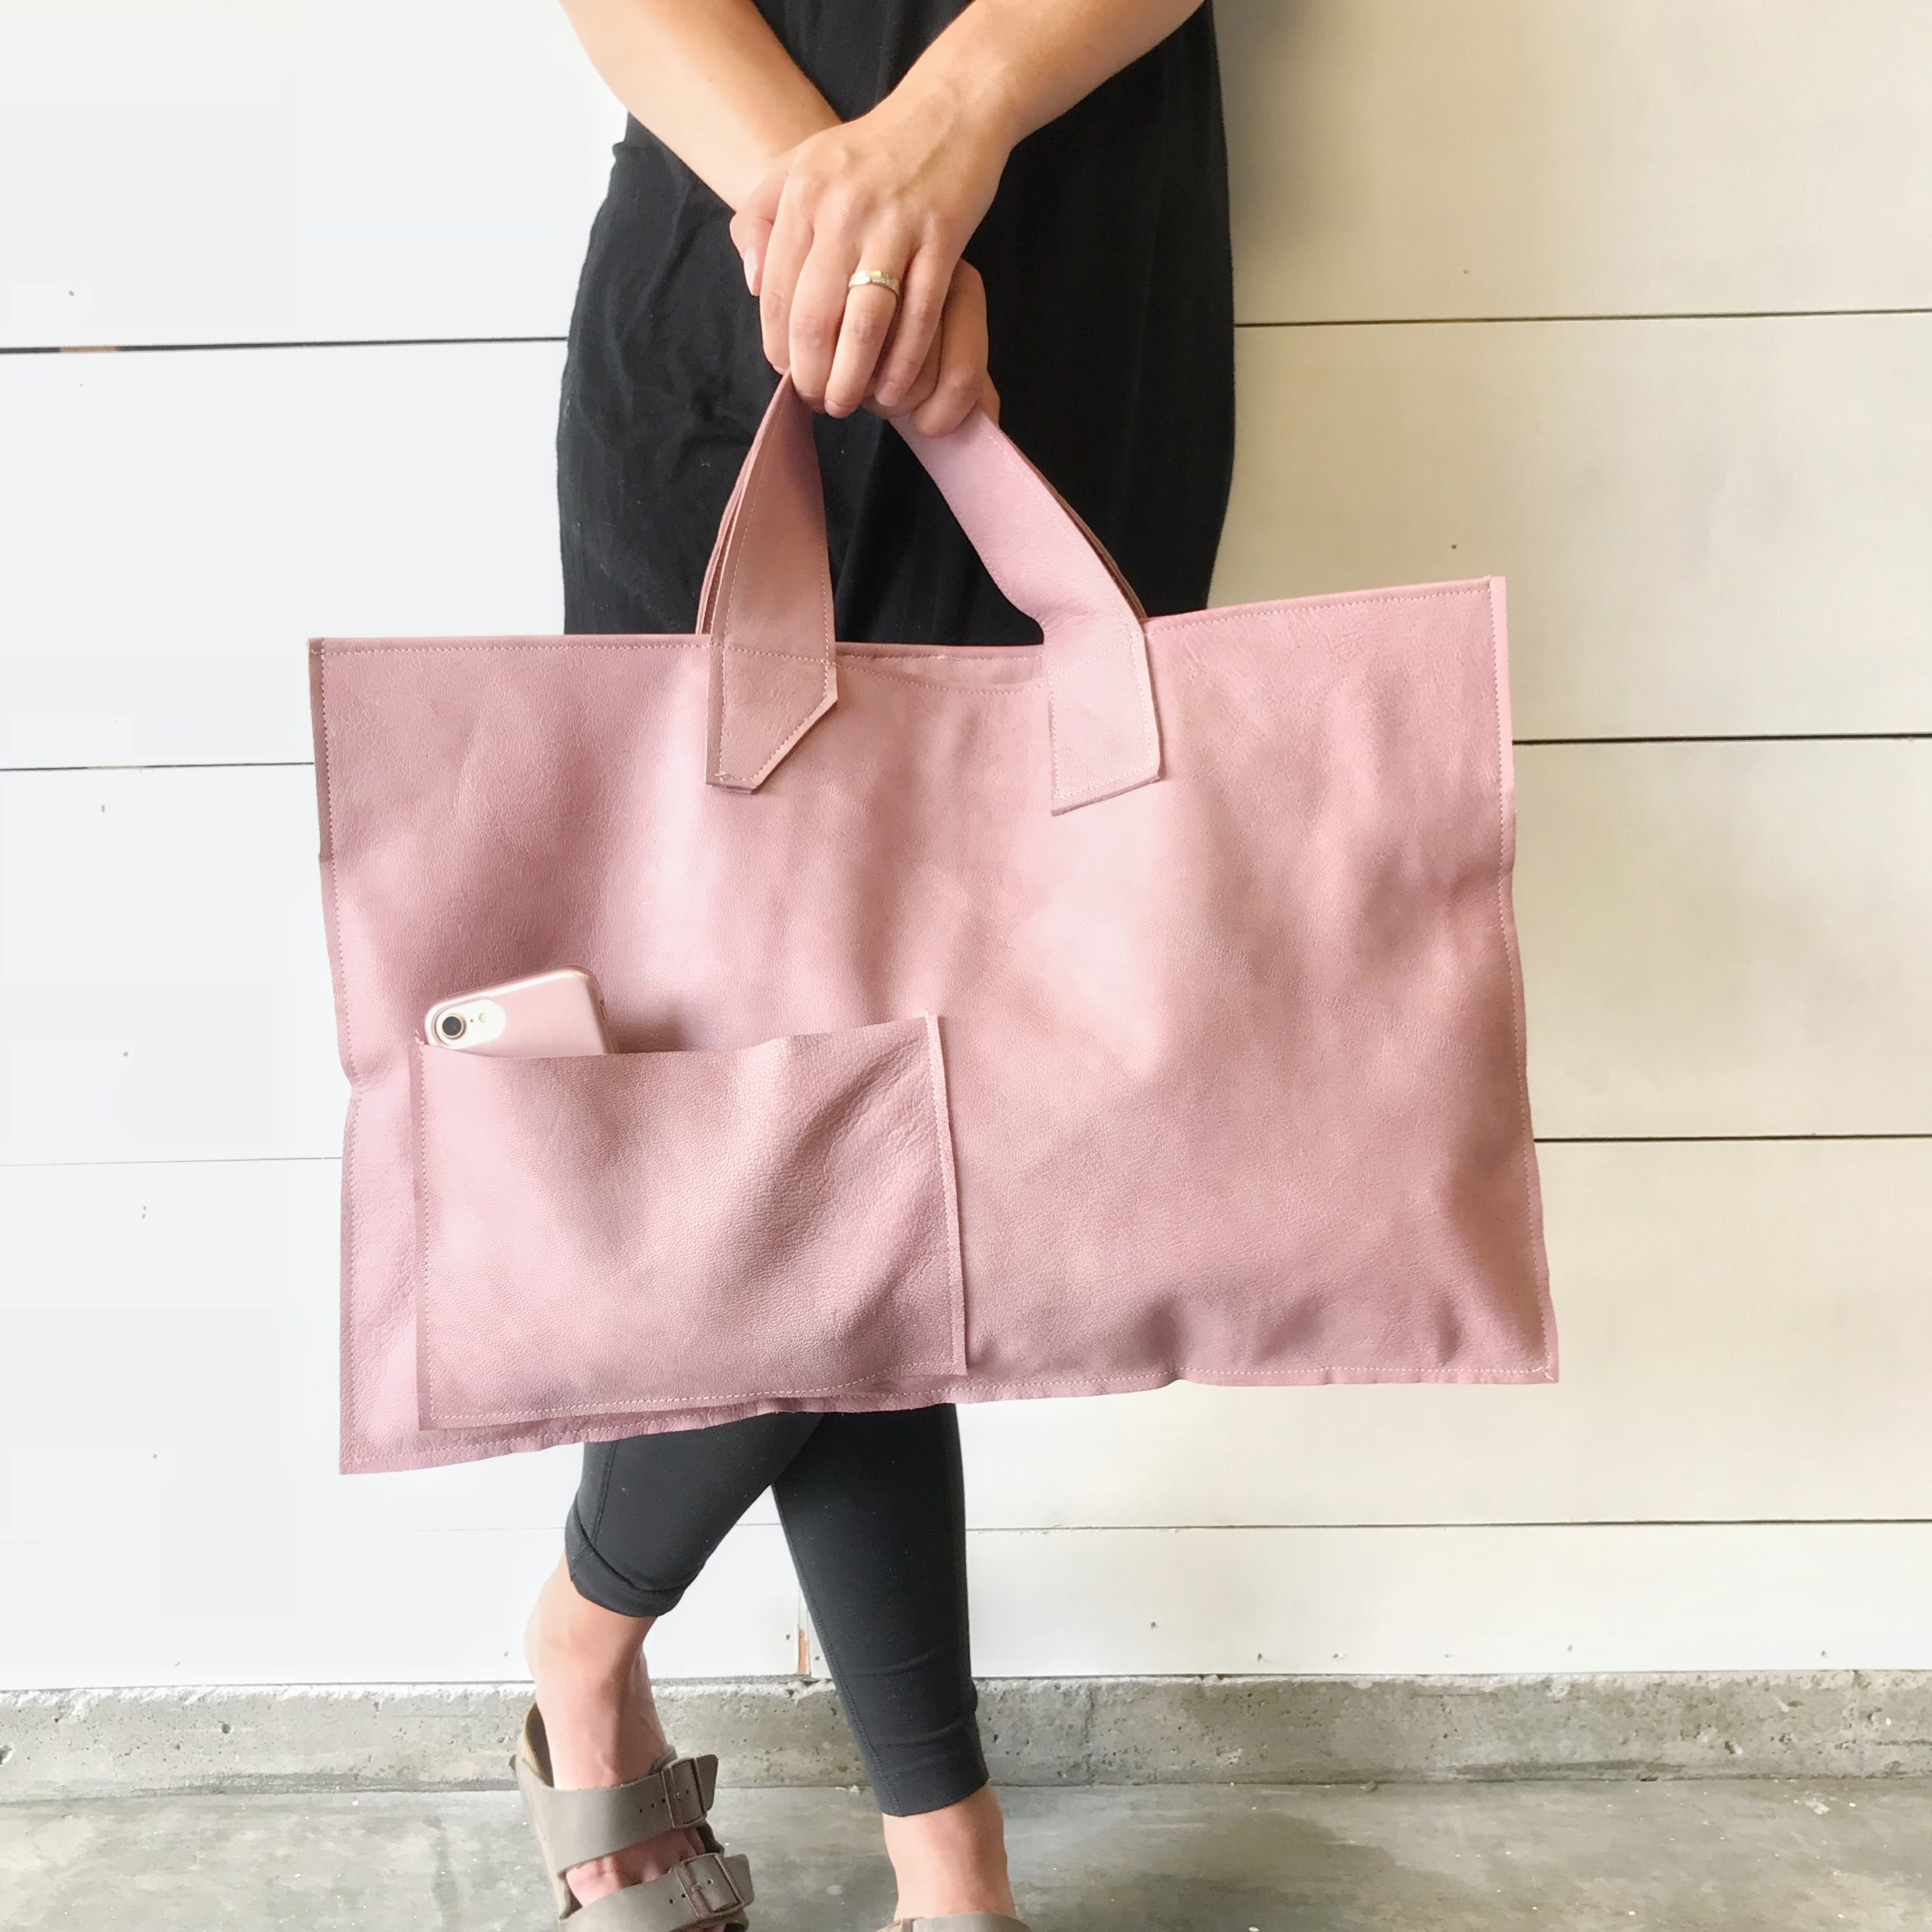 girl in black holding large pink leather bag